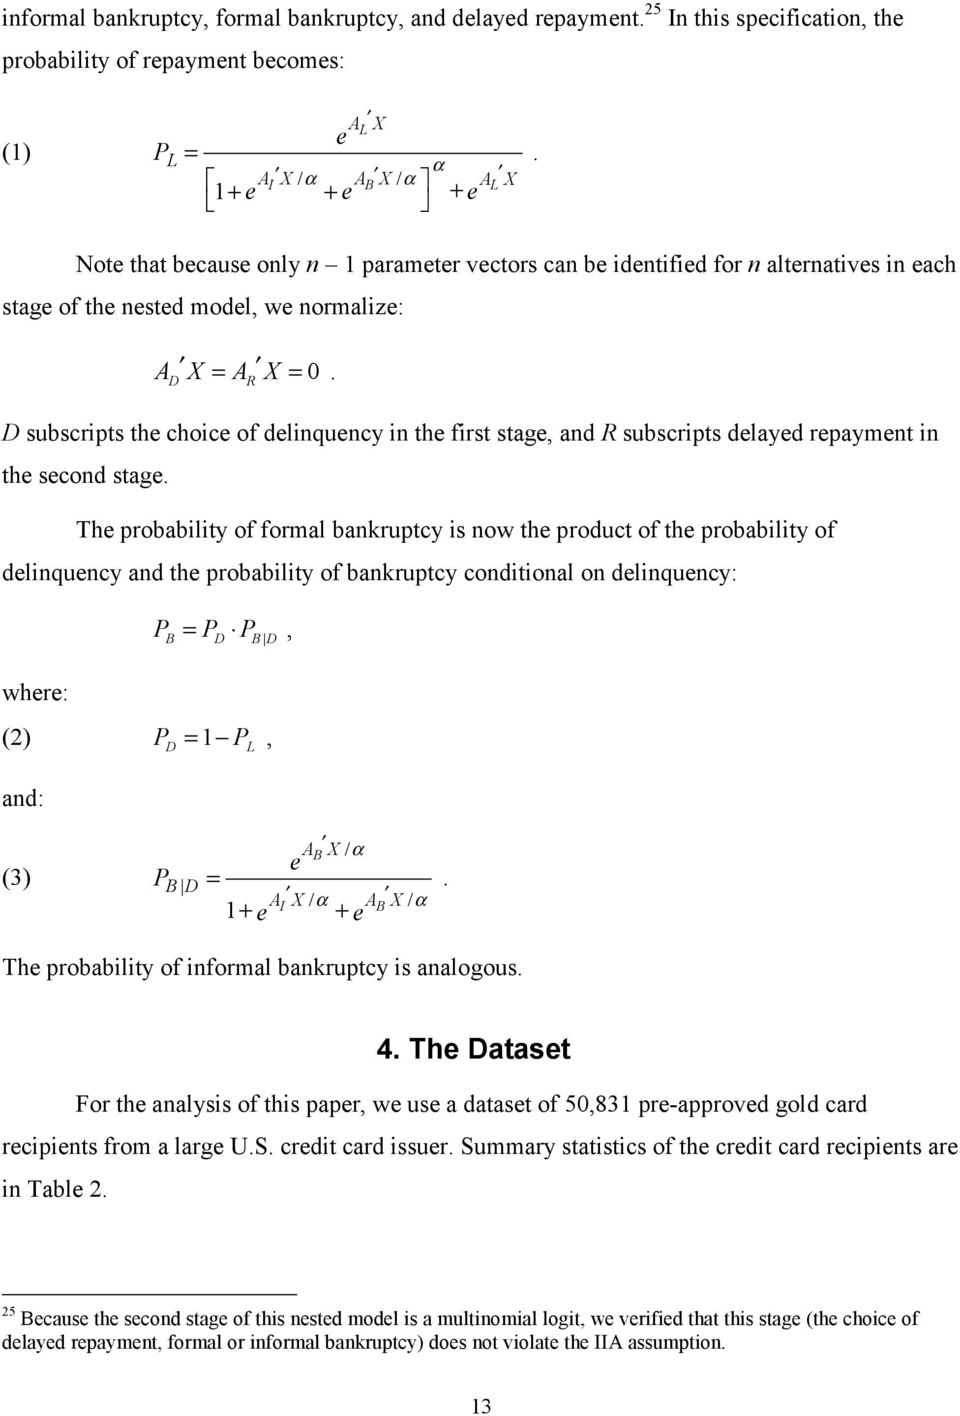 D R D subscripts the choice of delinquency in the first stage, and R subscripts delayed repayment in the second stage.